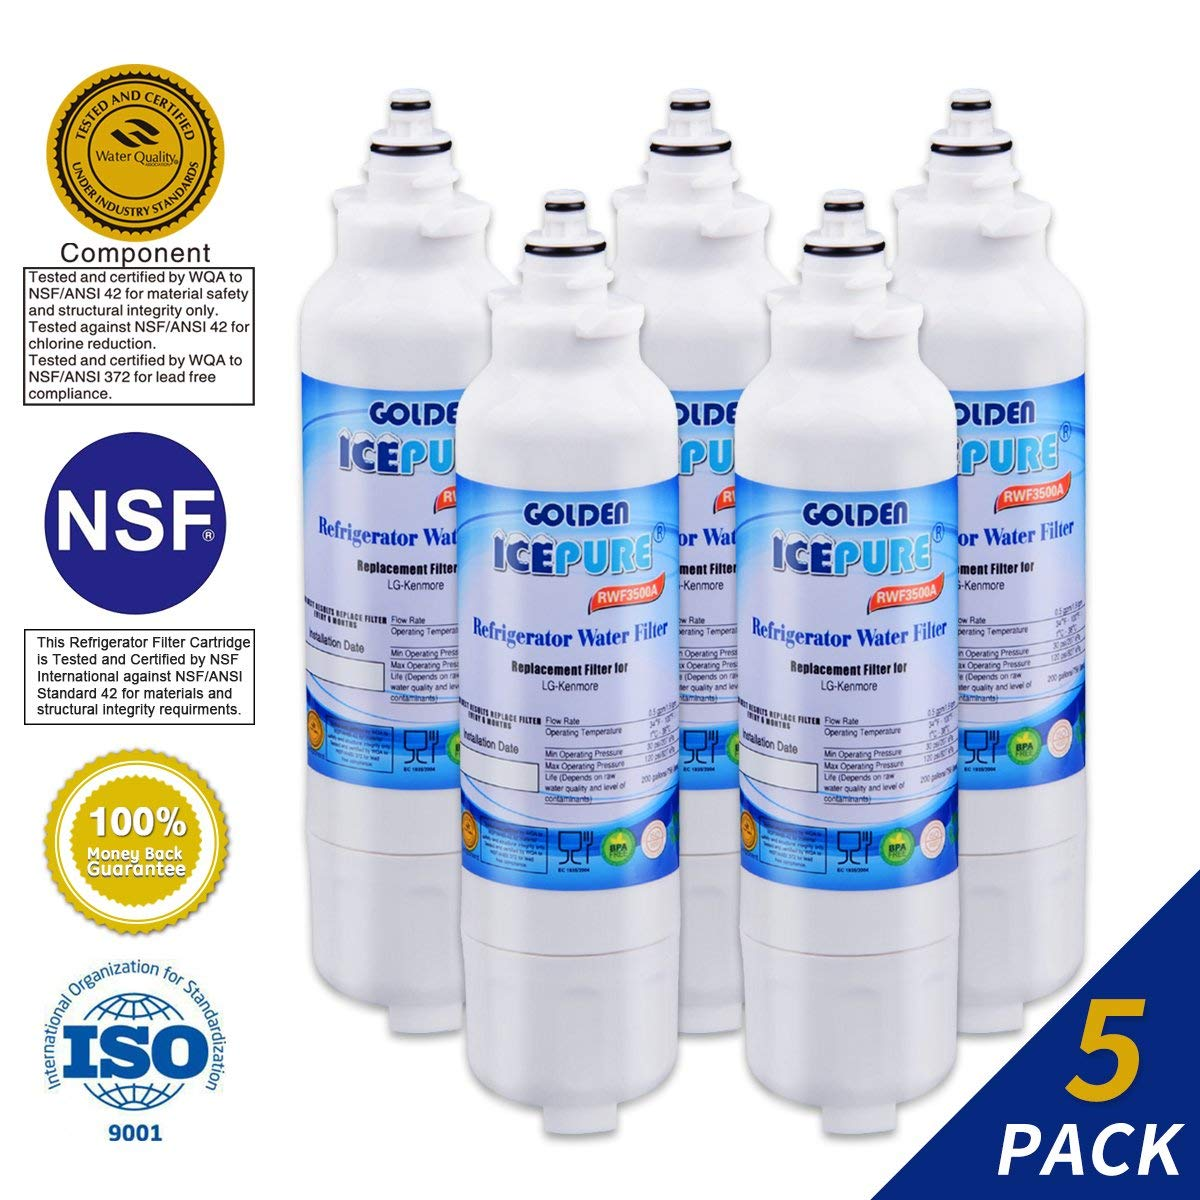 Golden Icepure LT800P Refrigerator Water Filter Replacement for LG for  $14.79  @ Amazon